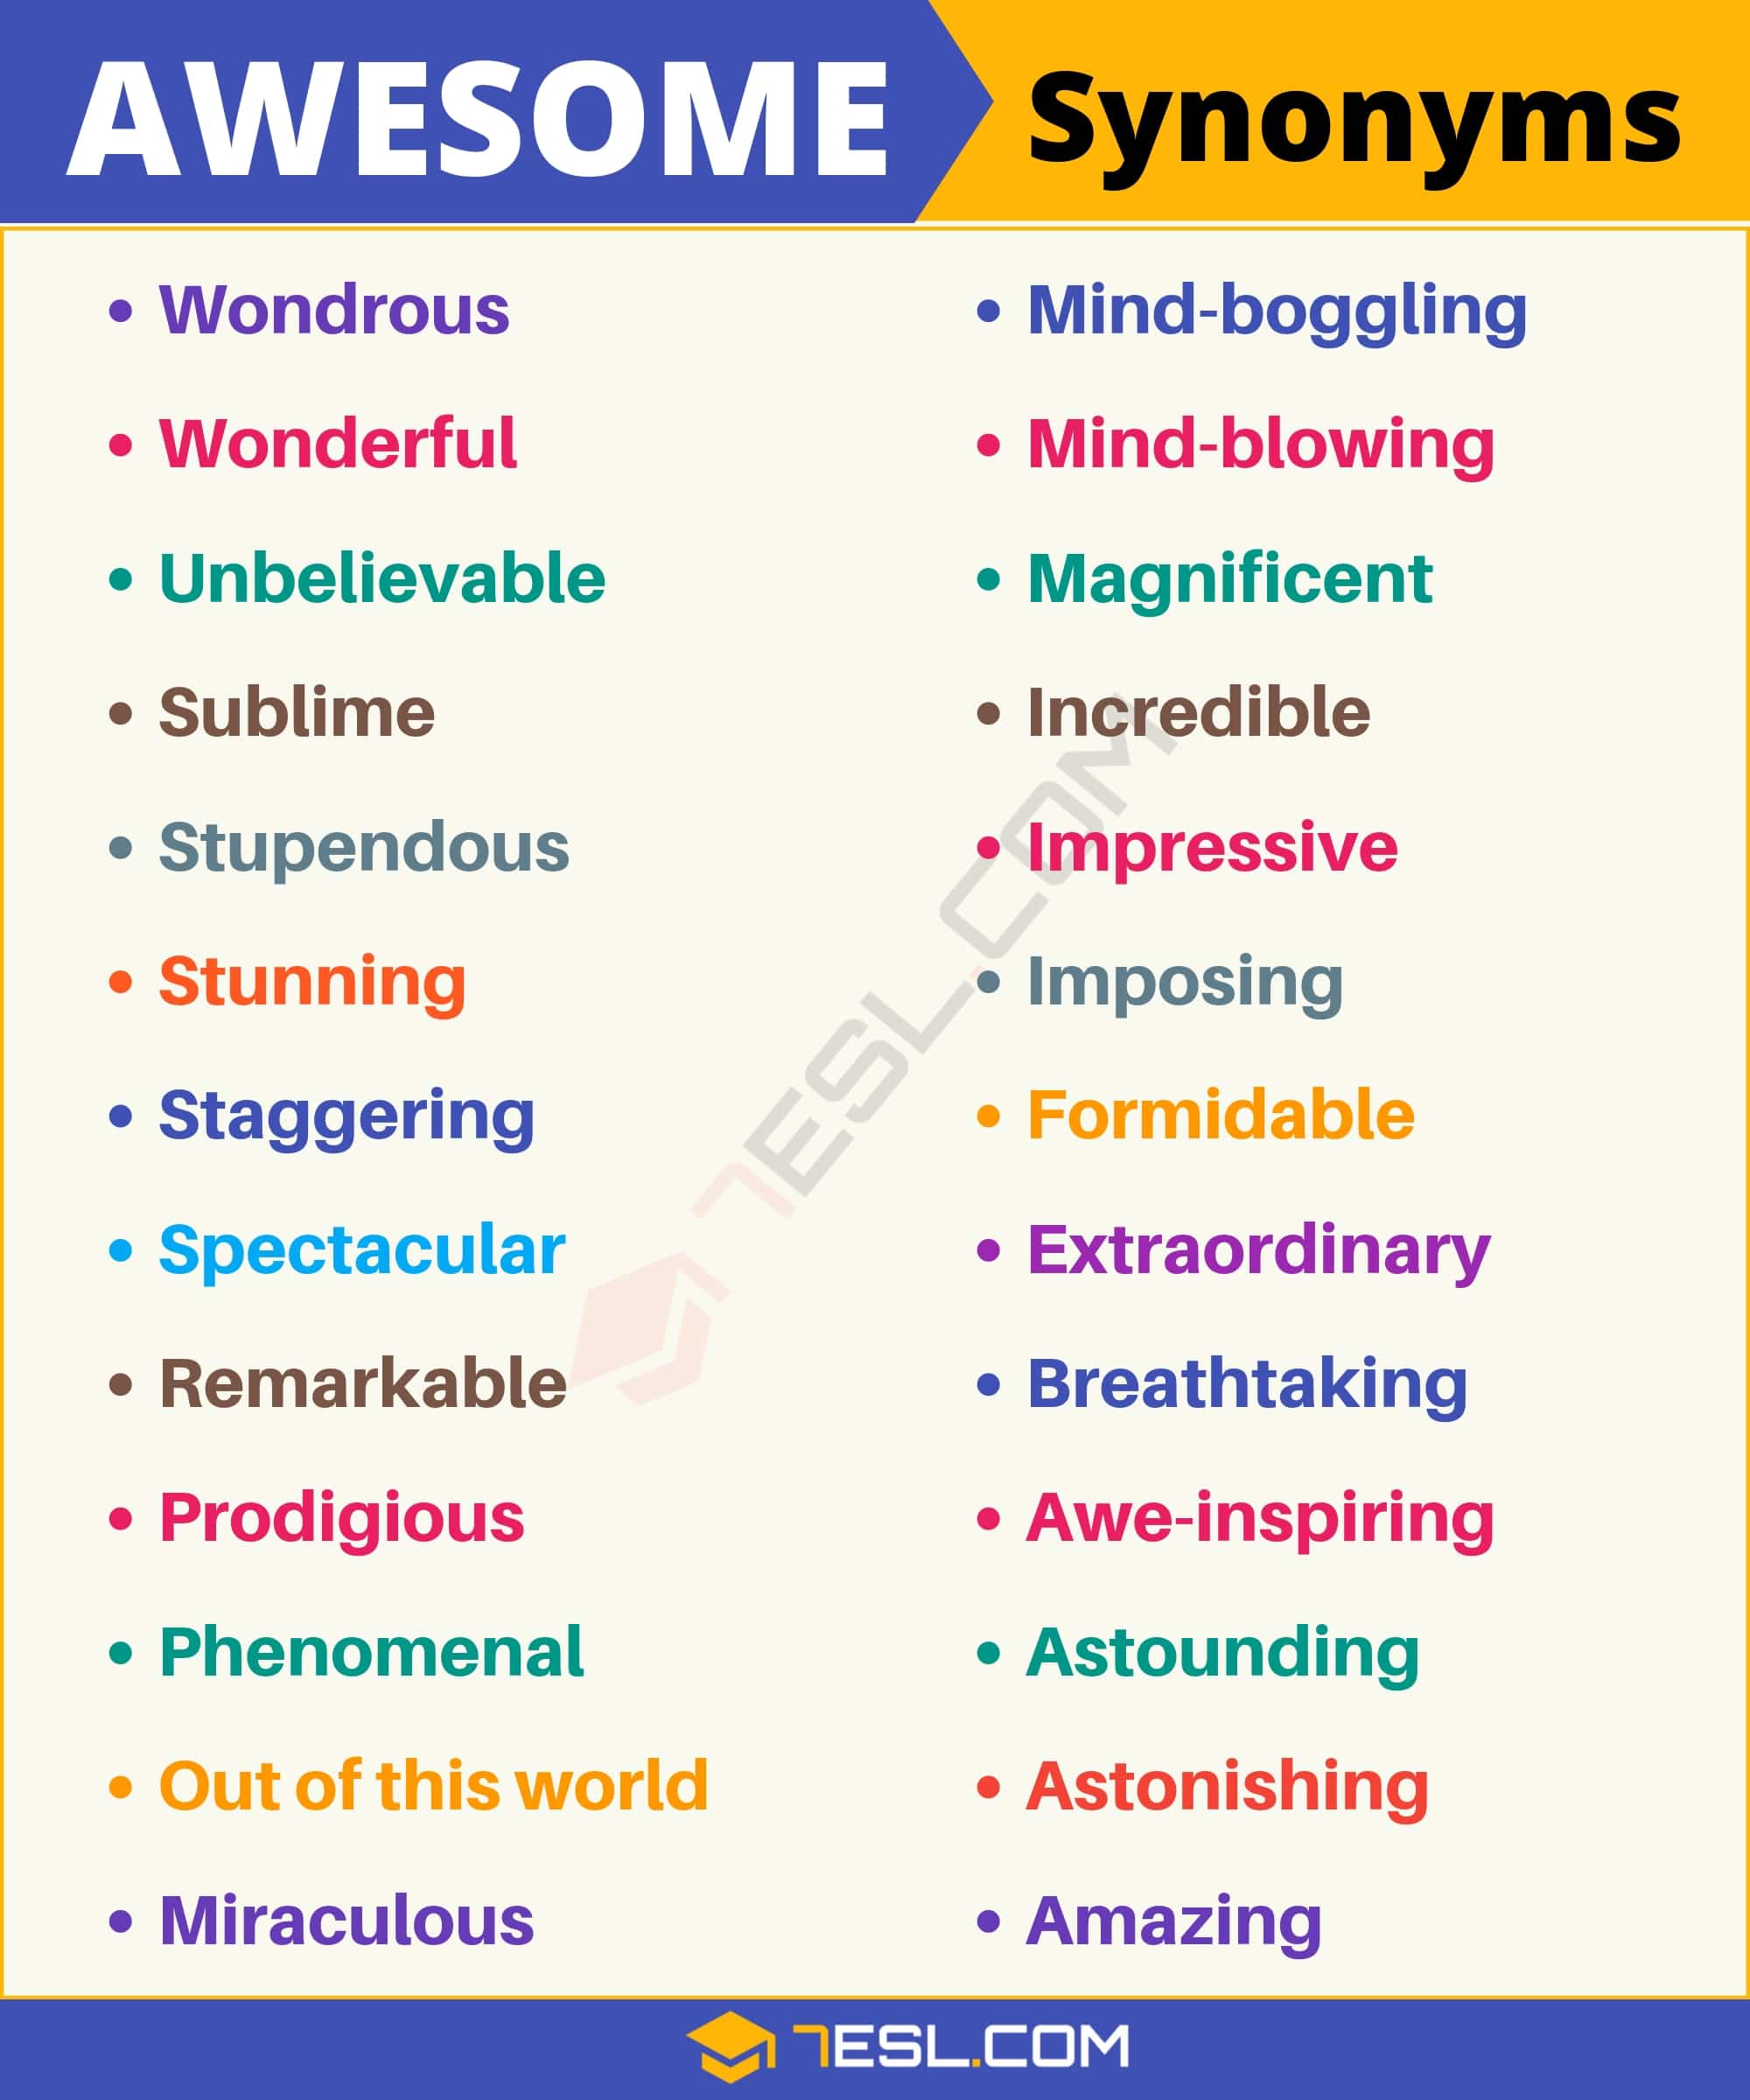 AWESOME Synonym: List of 26 Synonyms for Awesome with Examples